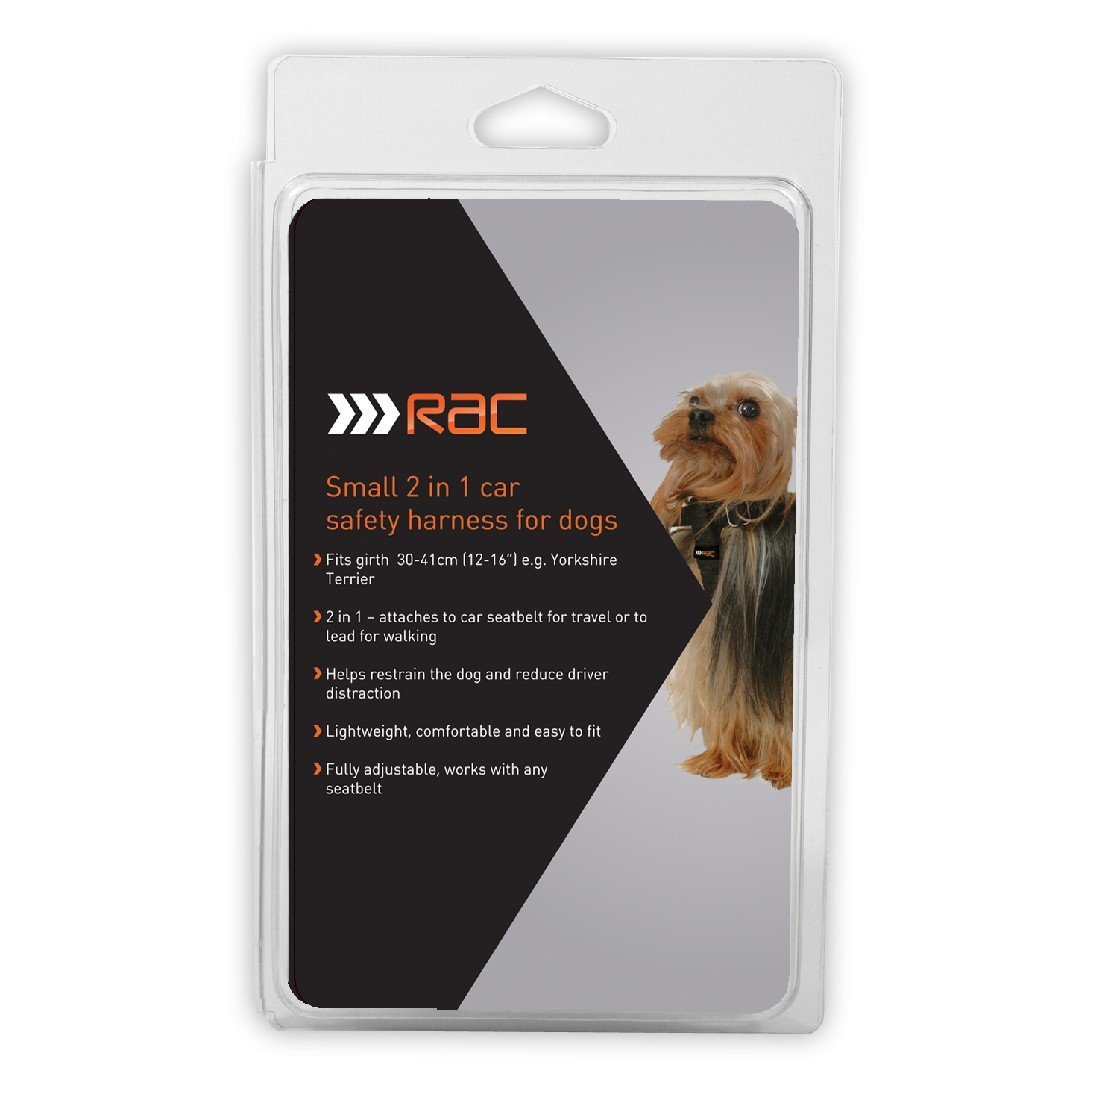 RAC 2-IN-1 CAR SAFETY HARNESS FOR DOGS (SMALL - GIRTH 30-41CM) - City Country Pets and Supplies